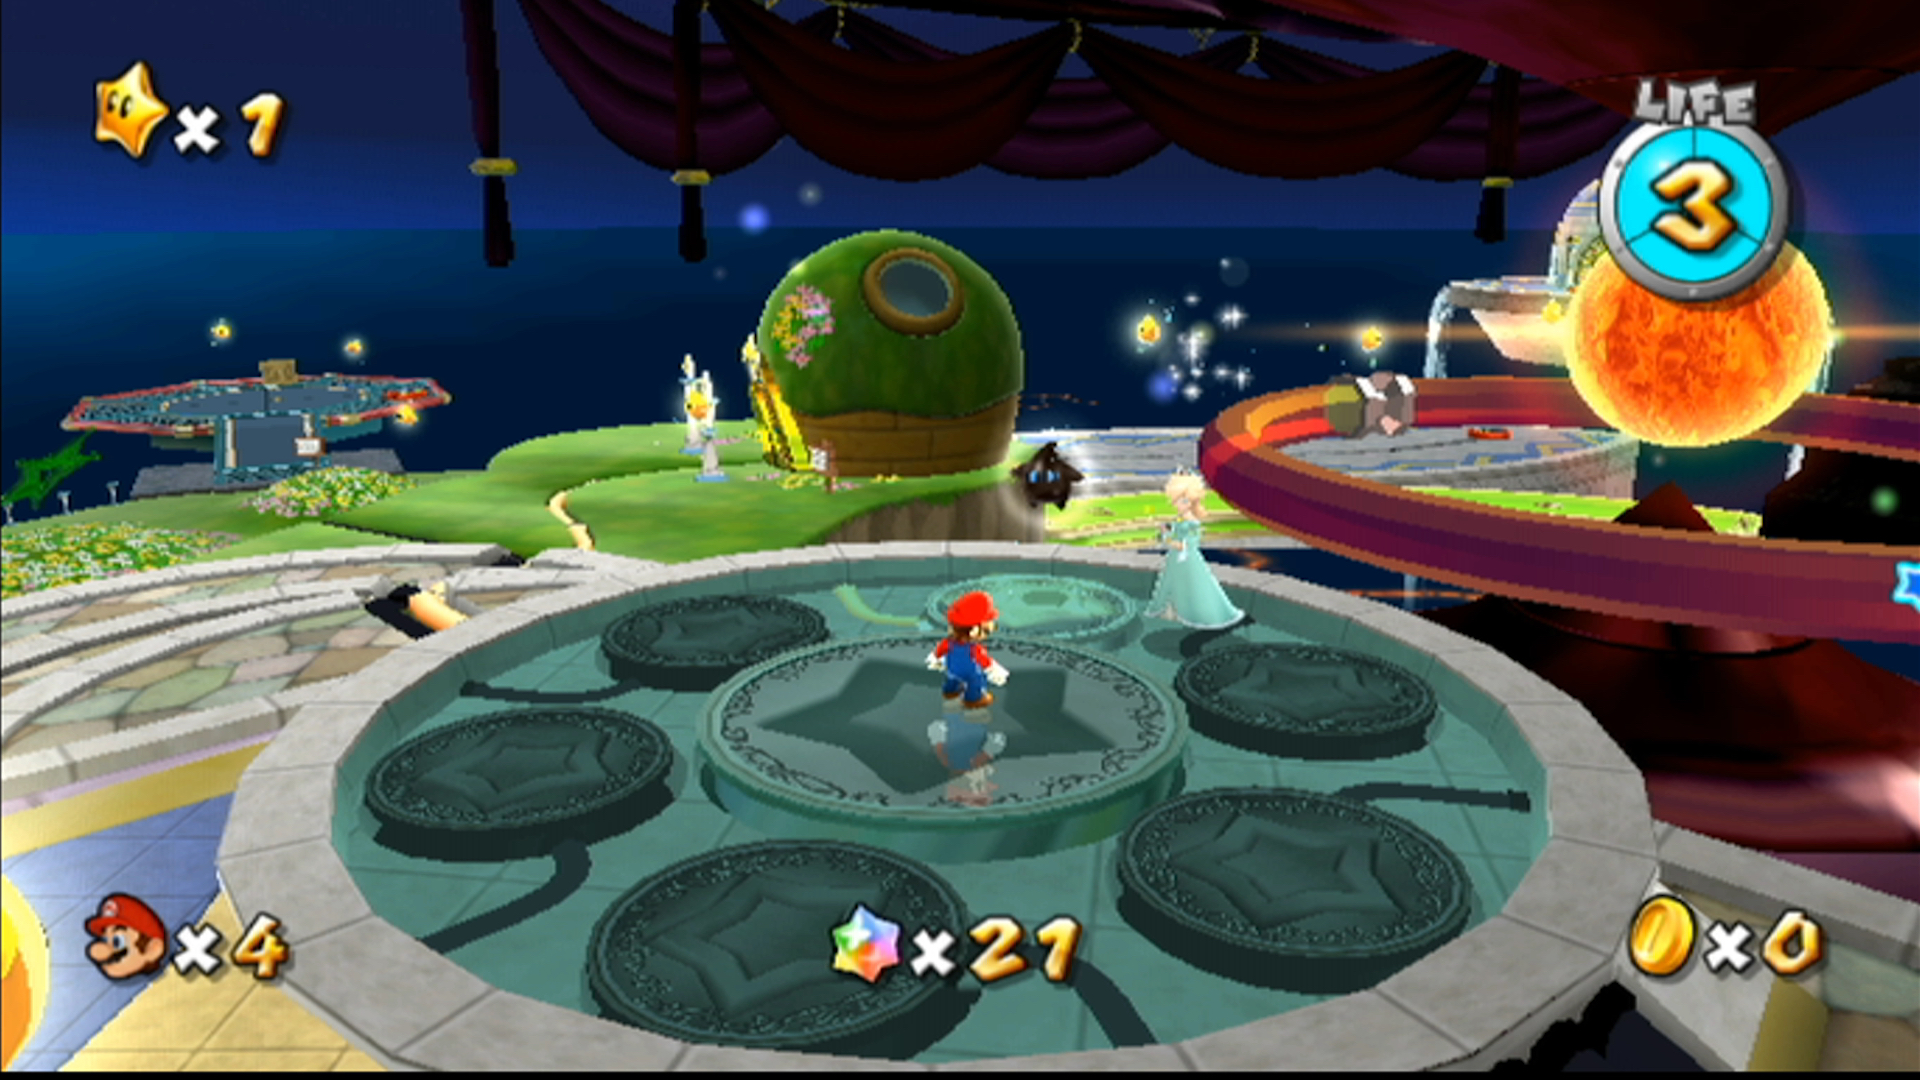 Hands-on with Super Mario Galaxy at 1080p on Nintendo's